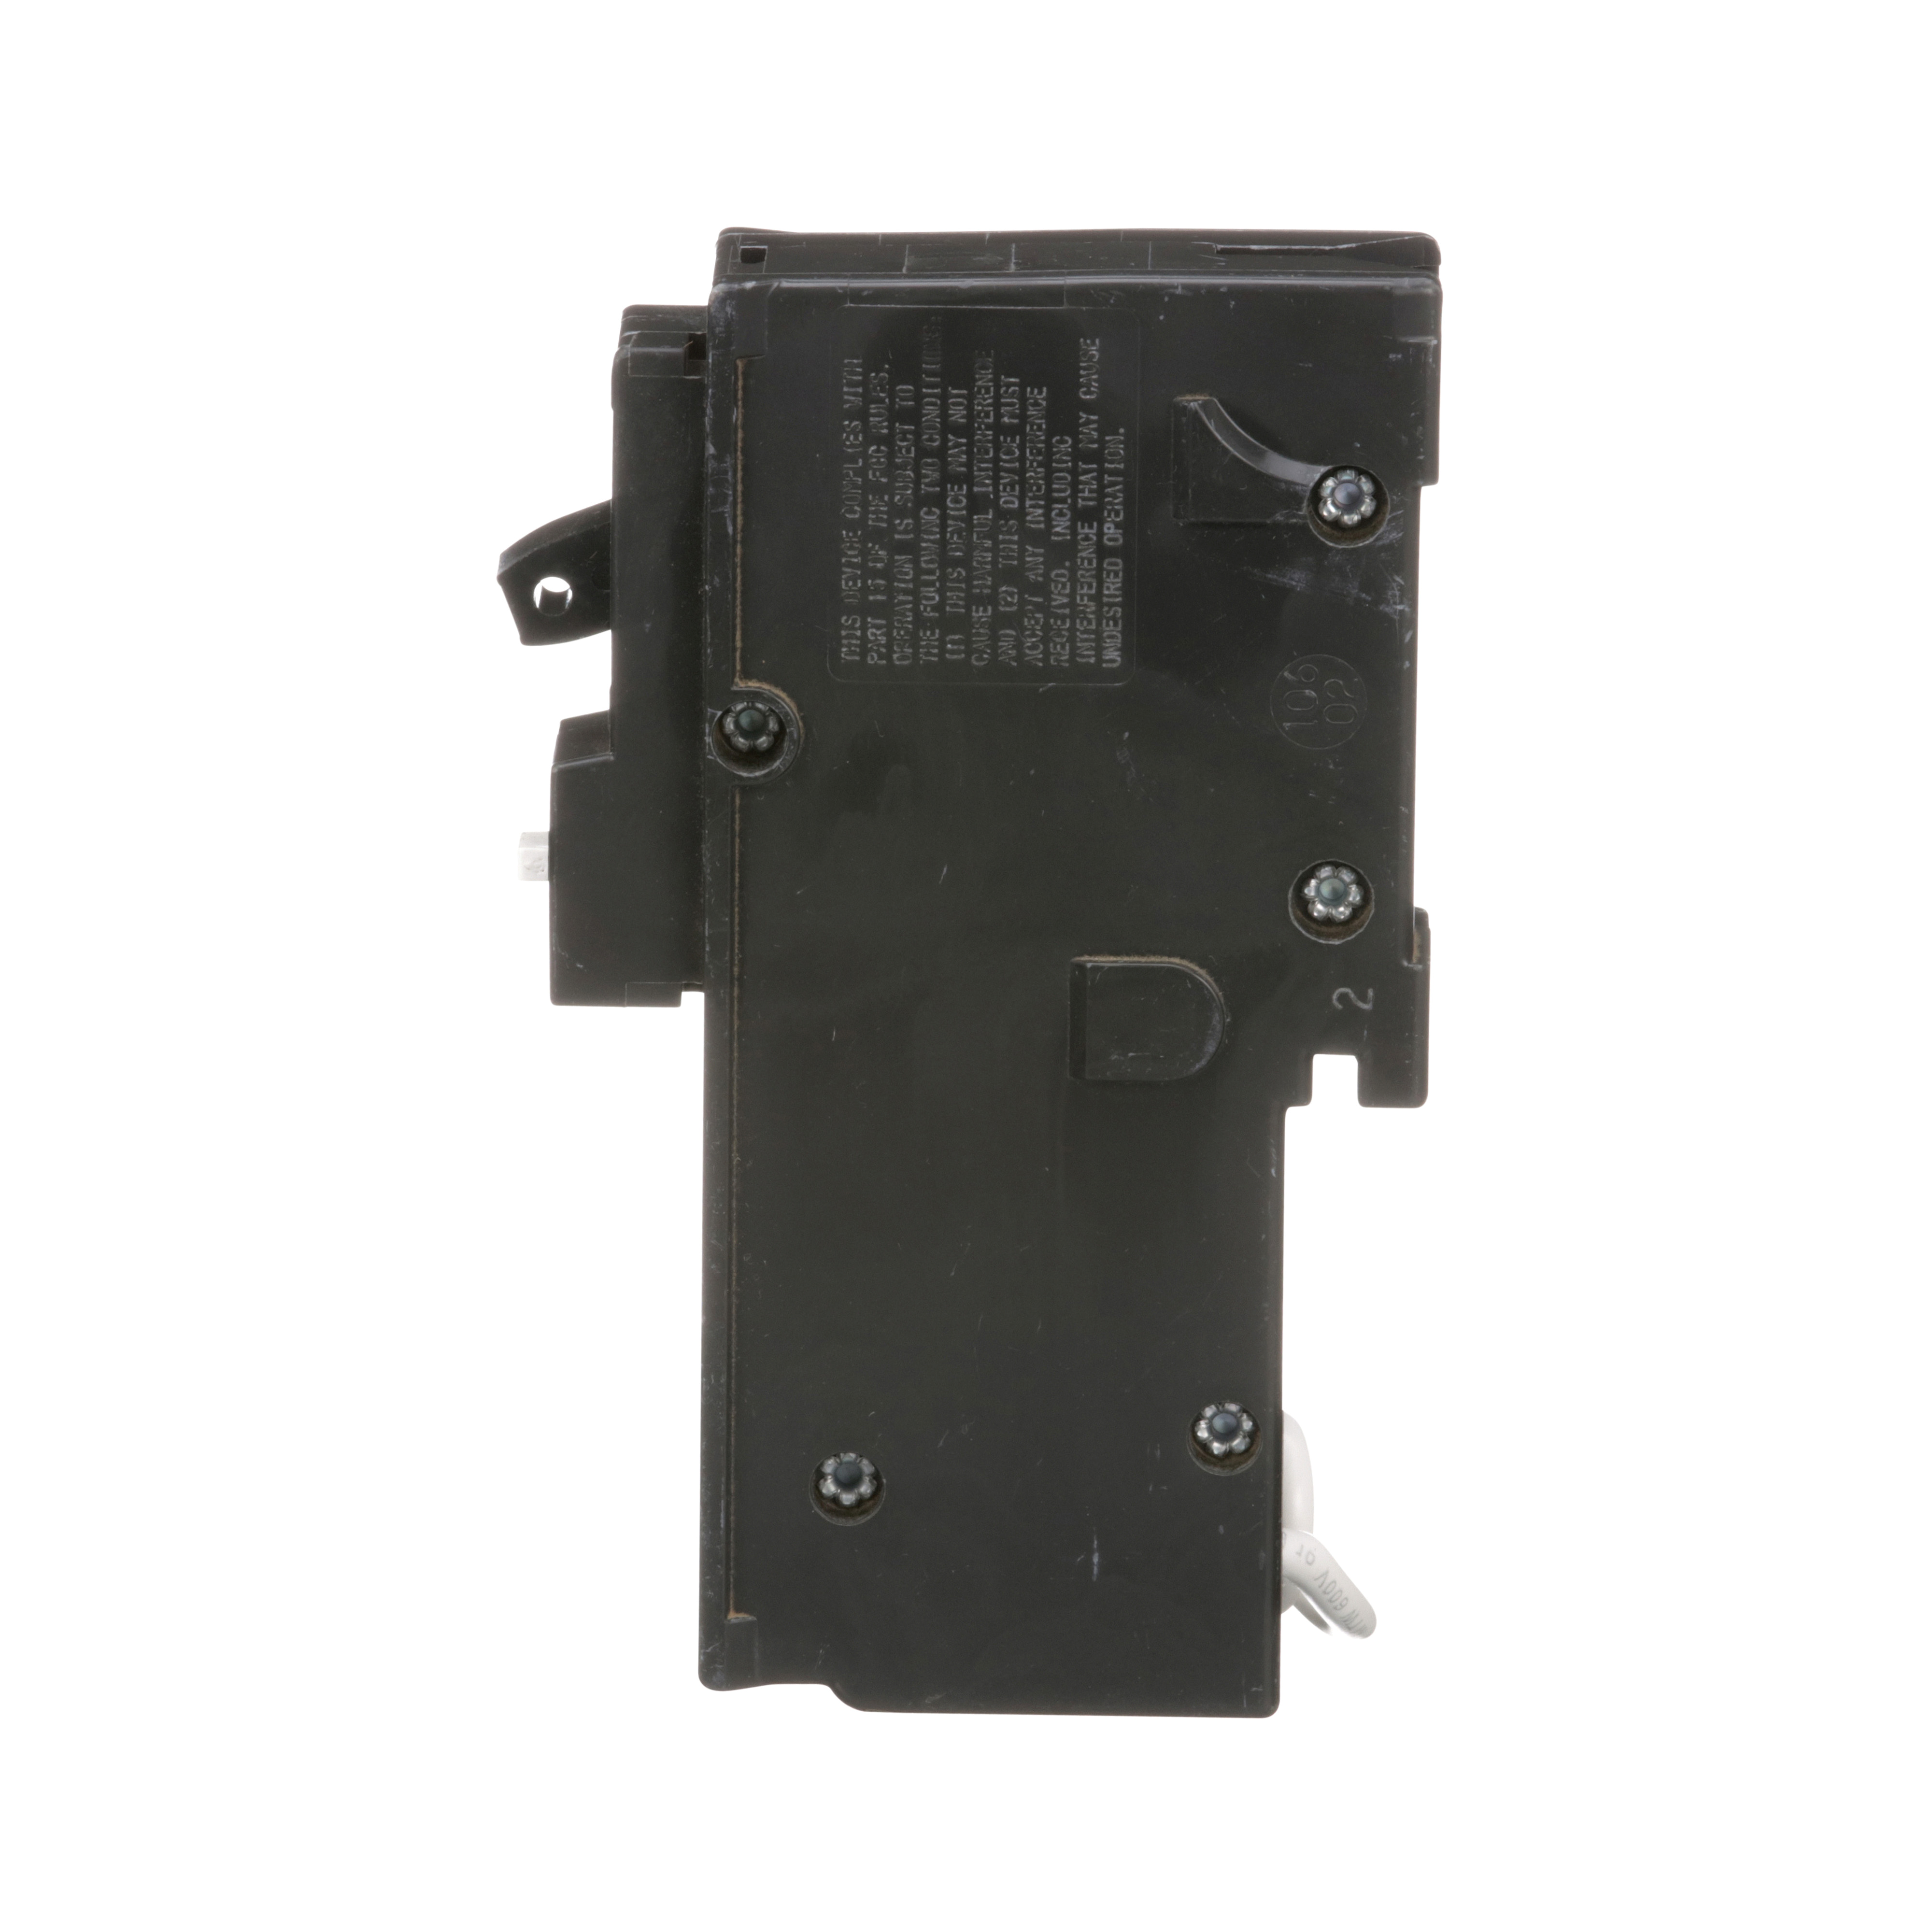 SquareD HOM115CAFI 15A 1P 120v Homeline Arc-Fault Circuit Breaker, Pigtail Neutral